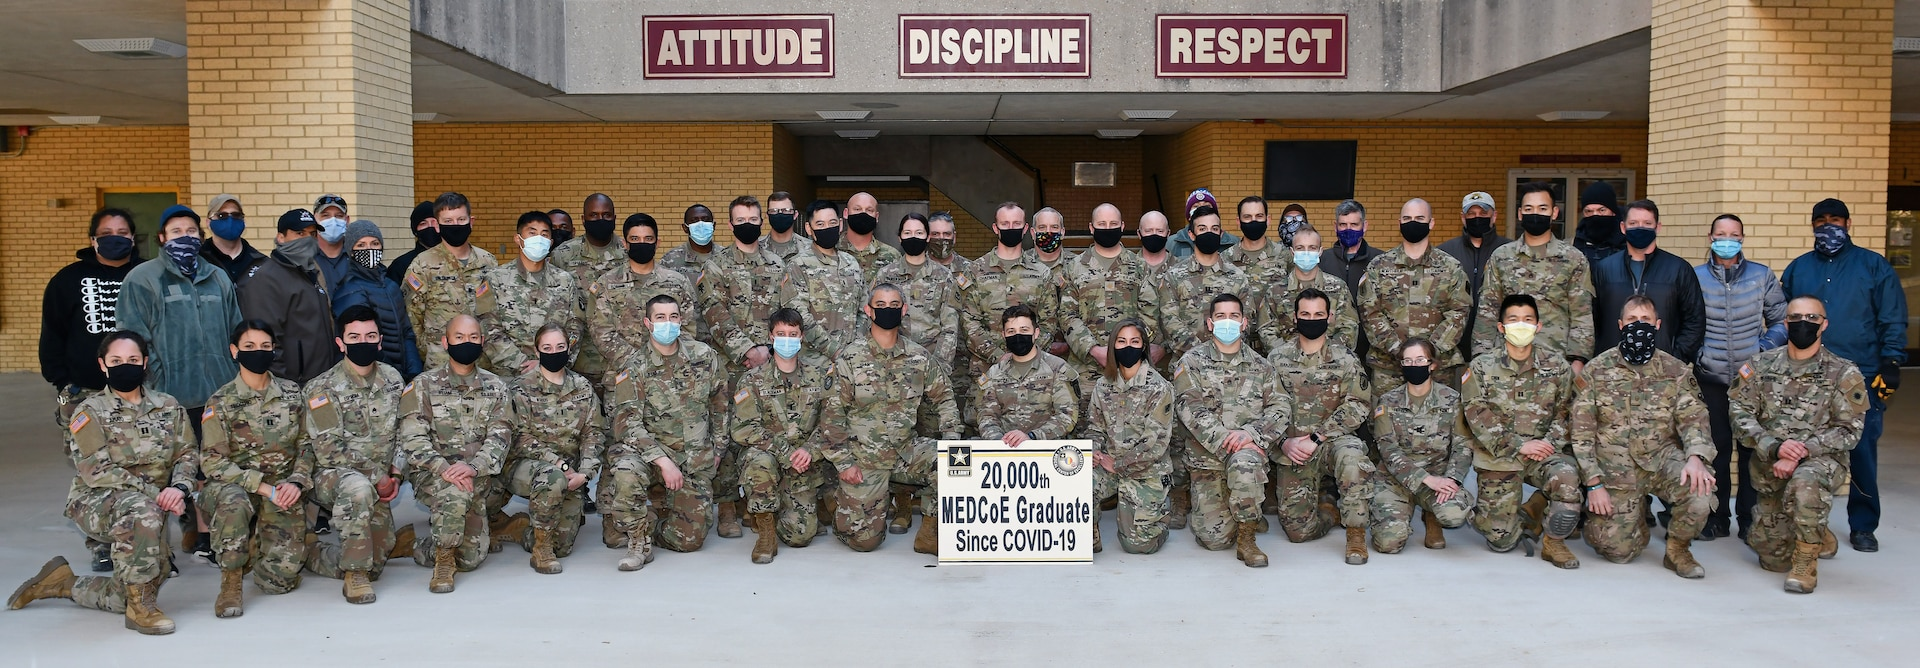 Sgt. Carter McCall (center) holds the 20,000th U.S. Army Medical Center of Excellence graduate since COVID-19 sign along with his classmates and course cadre.